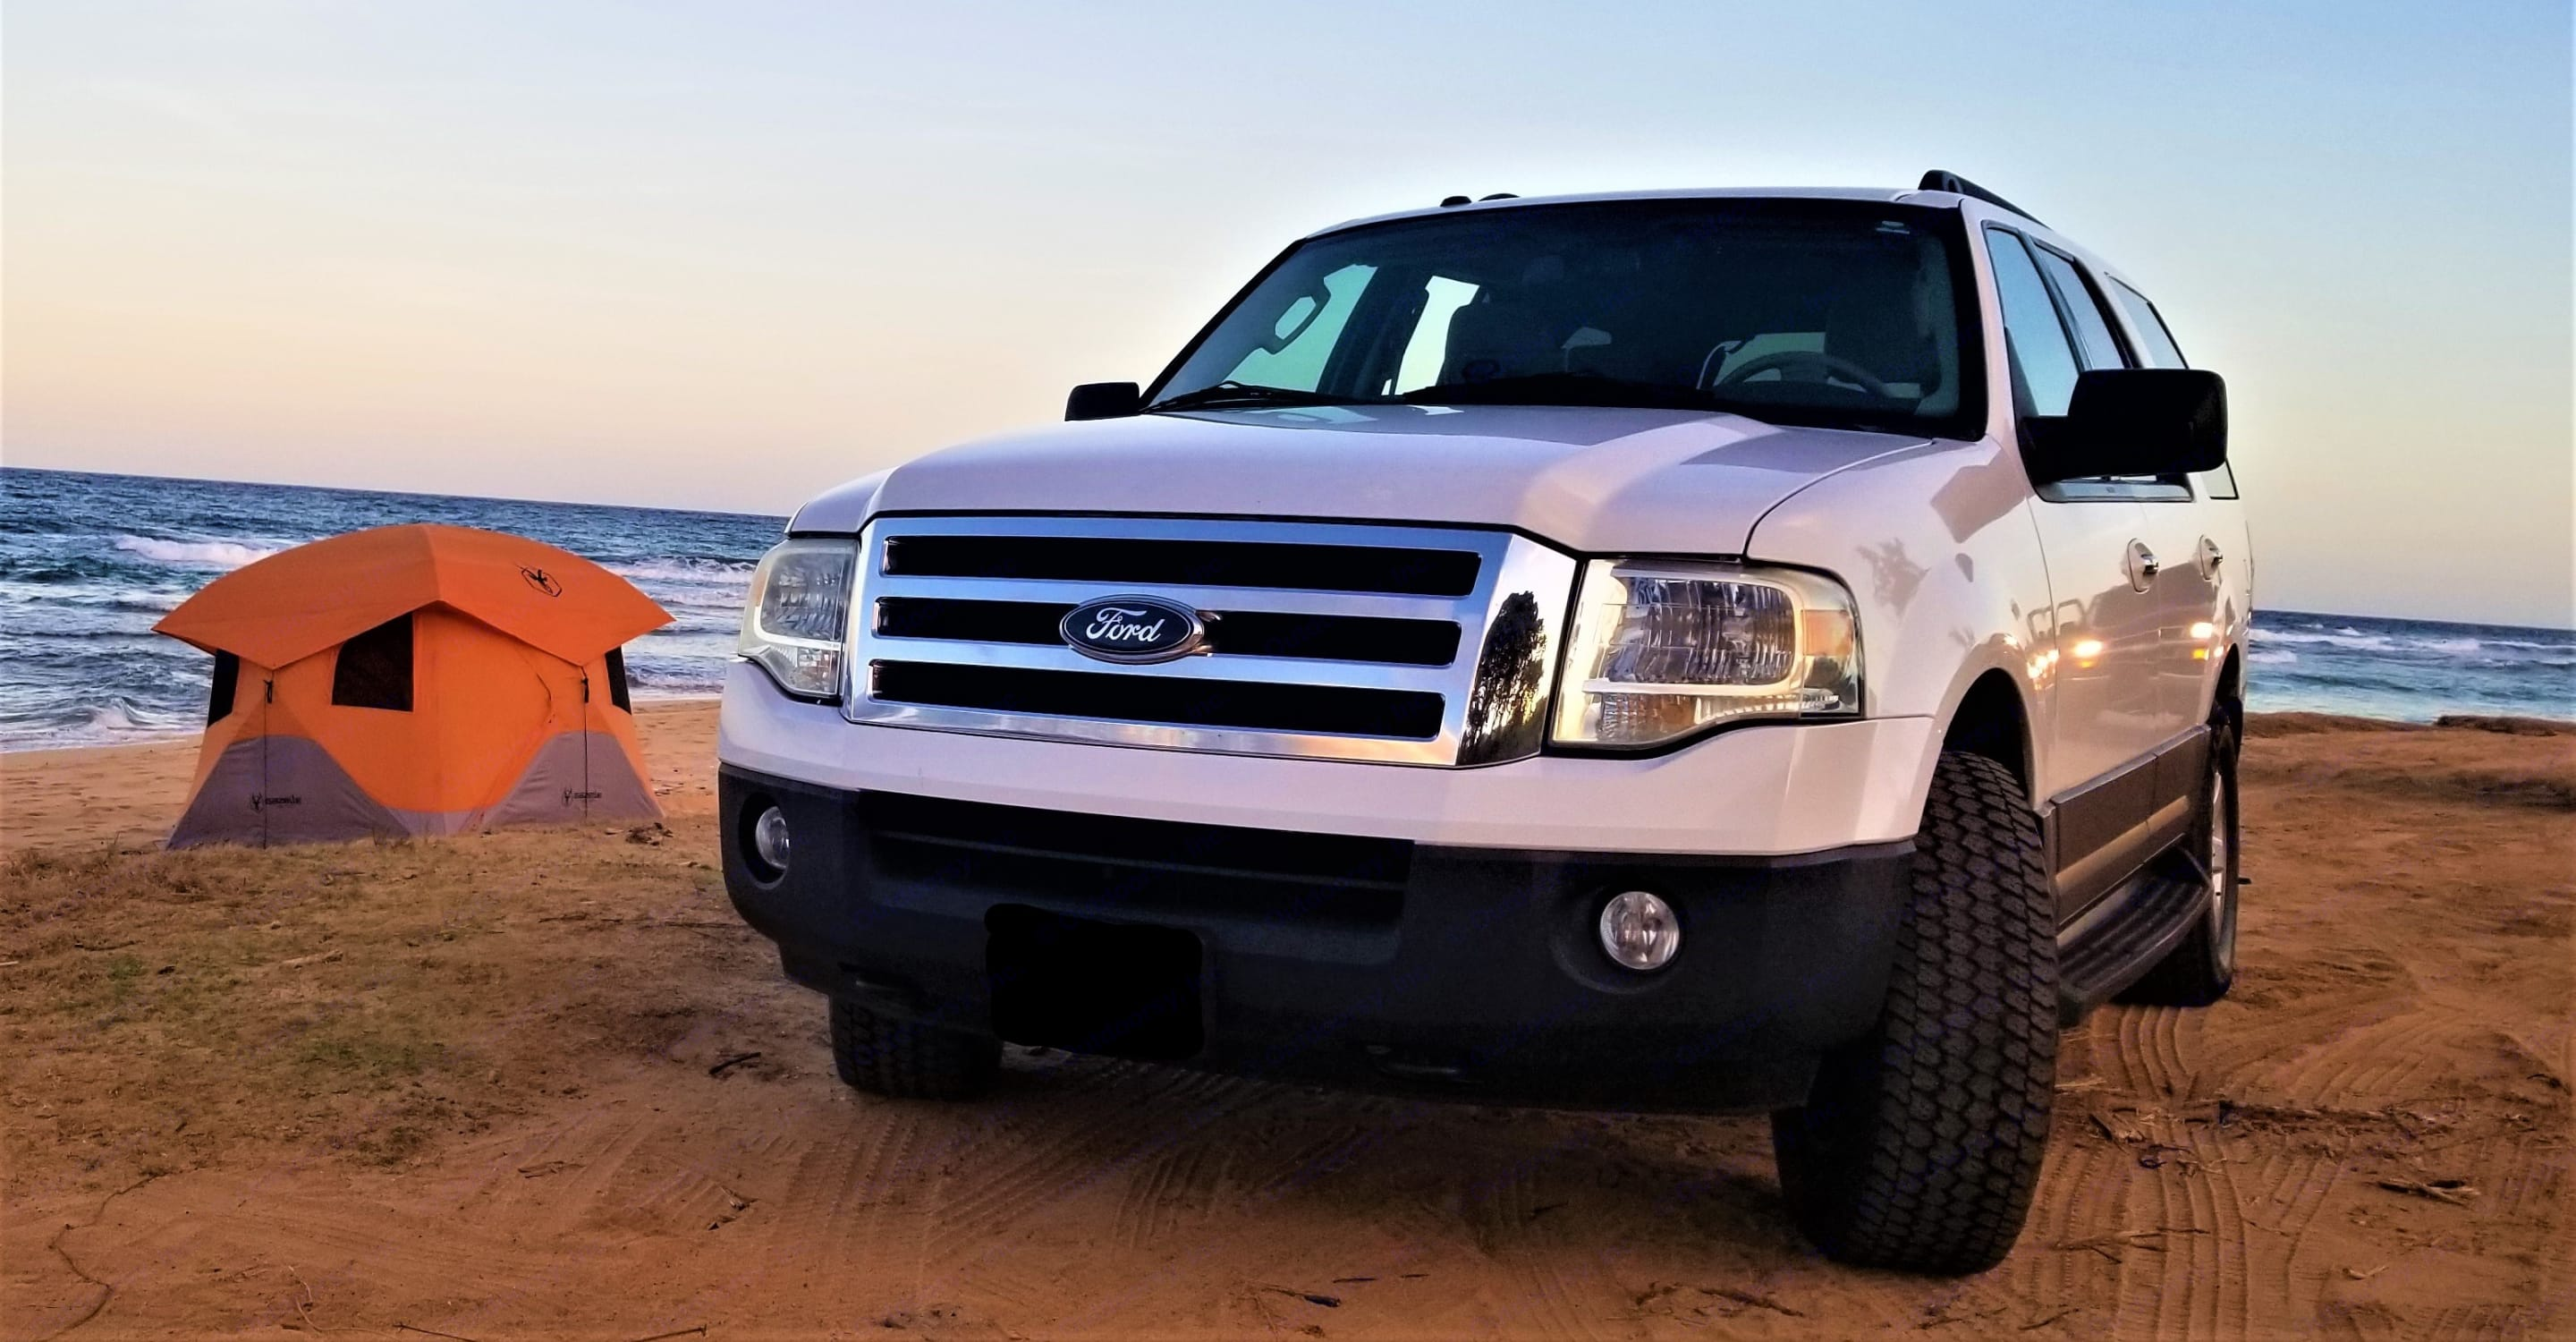 Ford Ford Expedition 2011